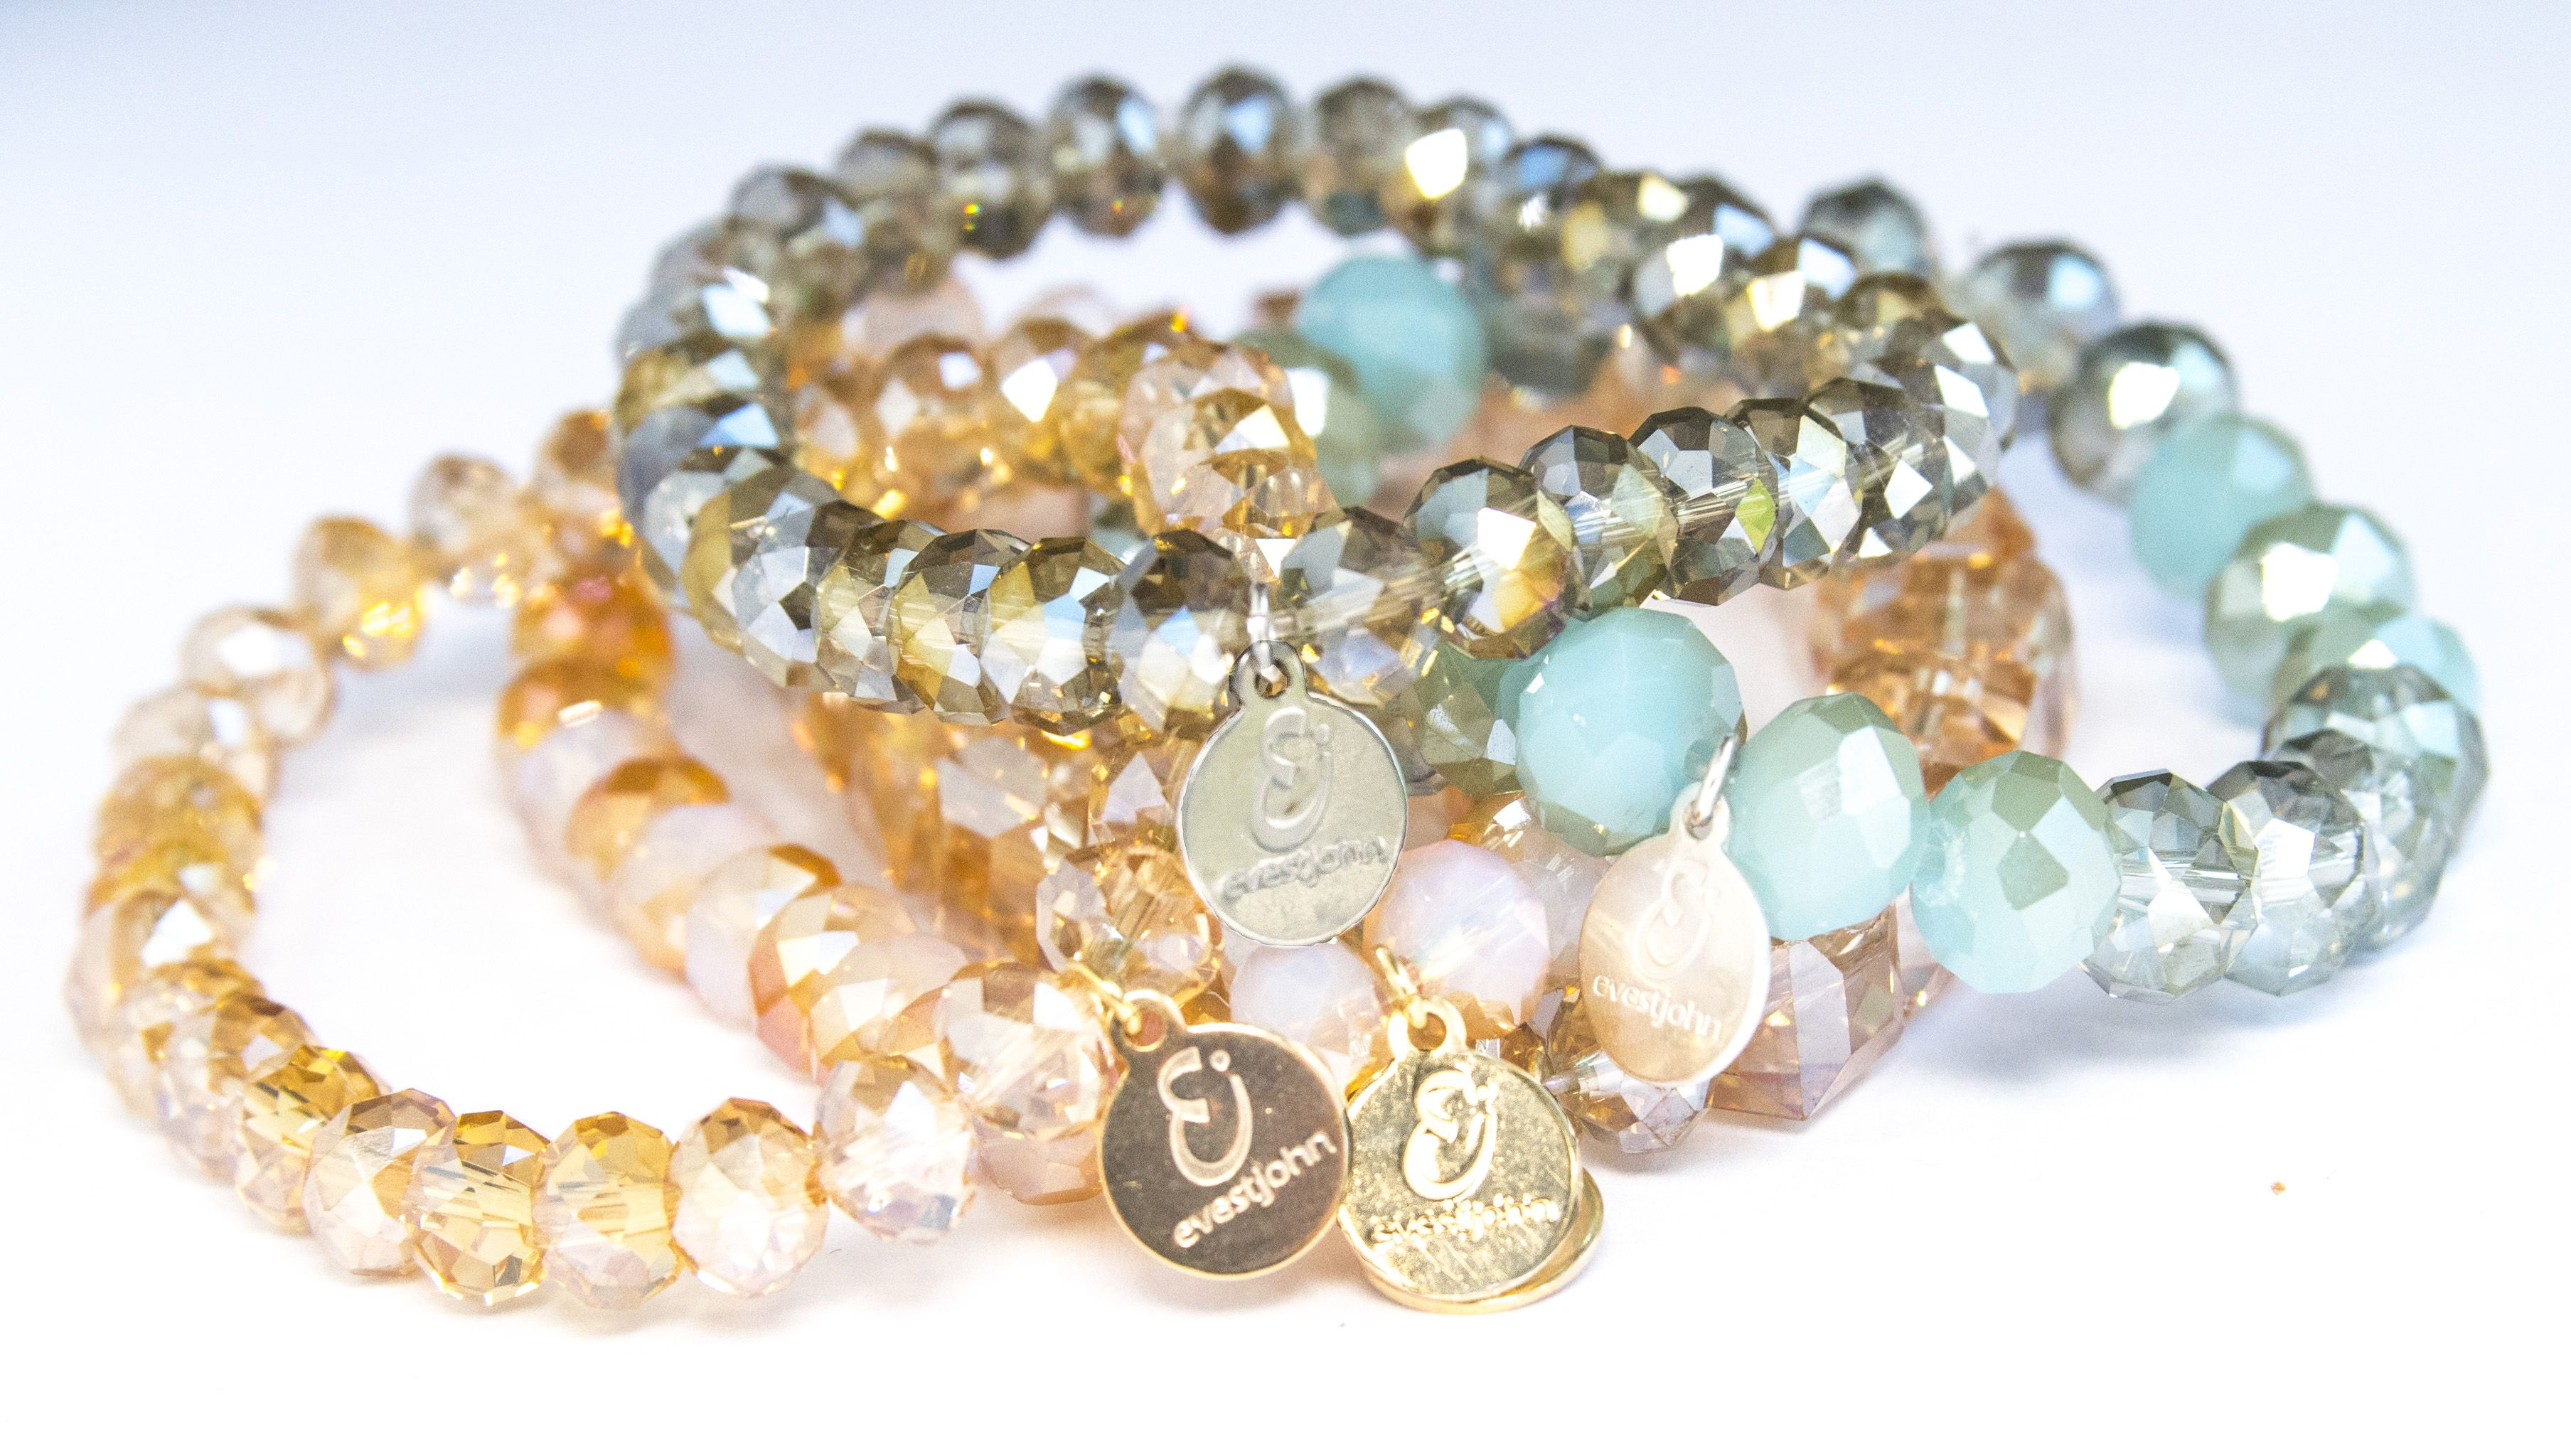 john goddess your these yoga limitless bracelets sparkle bracelet pin day uplift best inspirational eve karma st gorgeous gifts with inspire mothers spirit wedding graduation birthday presents